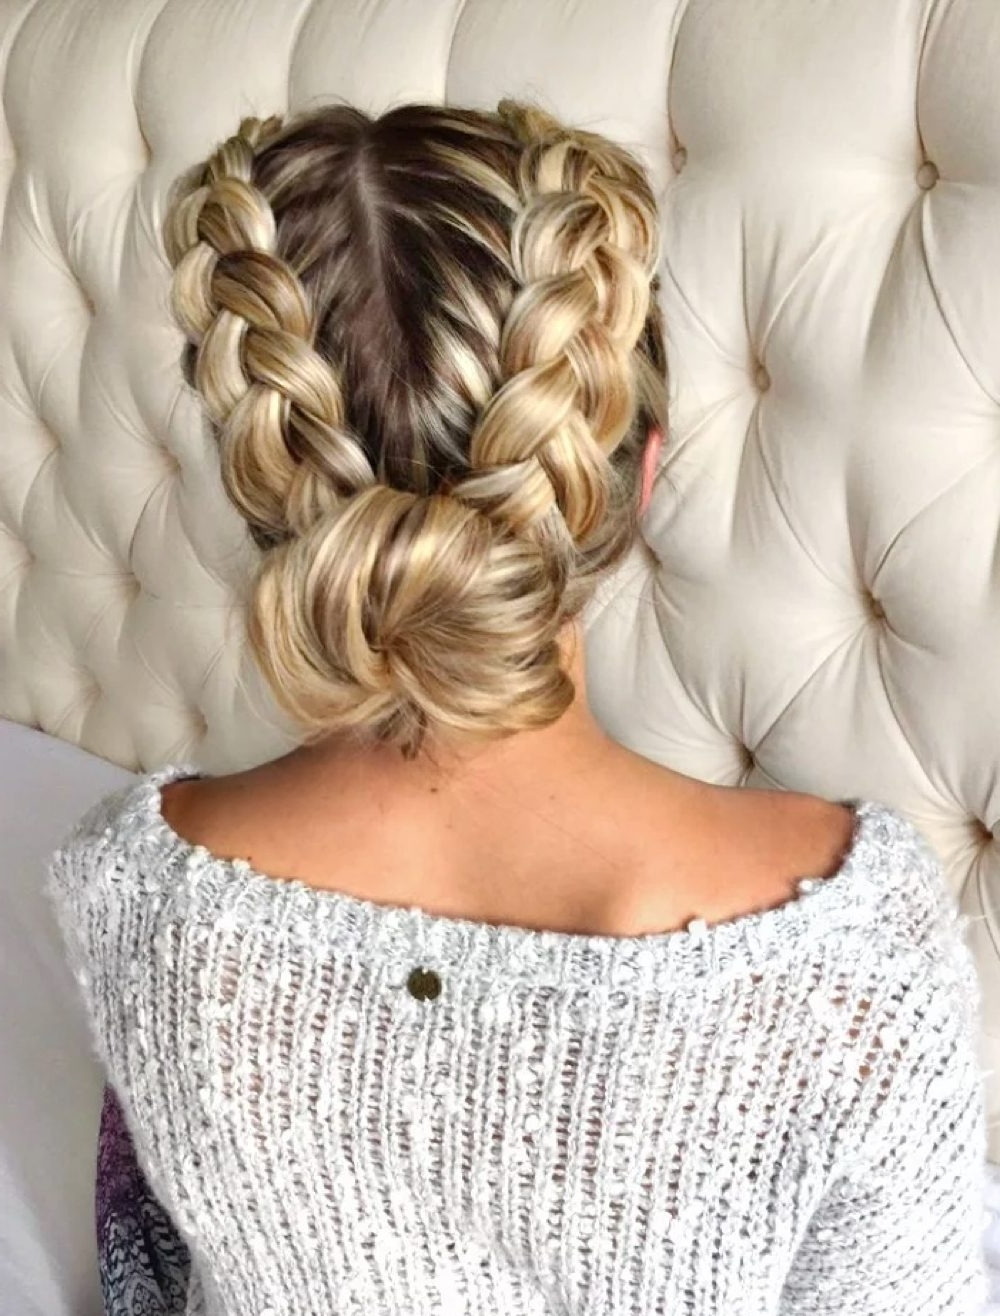 28 Gorgeous Braided Updo Ideas For 2018 Regarding Newest Braided Bun With Two French Braids (View 14 of 15)